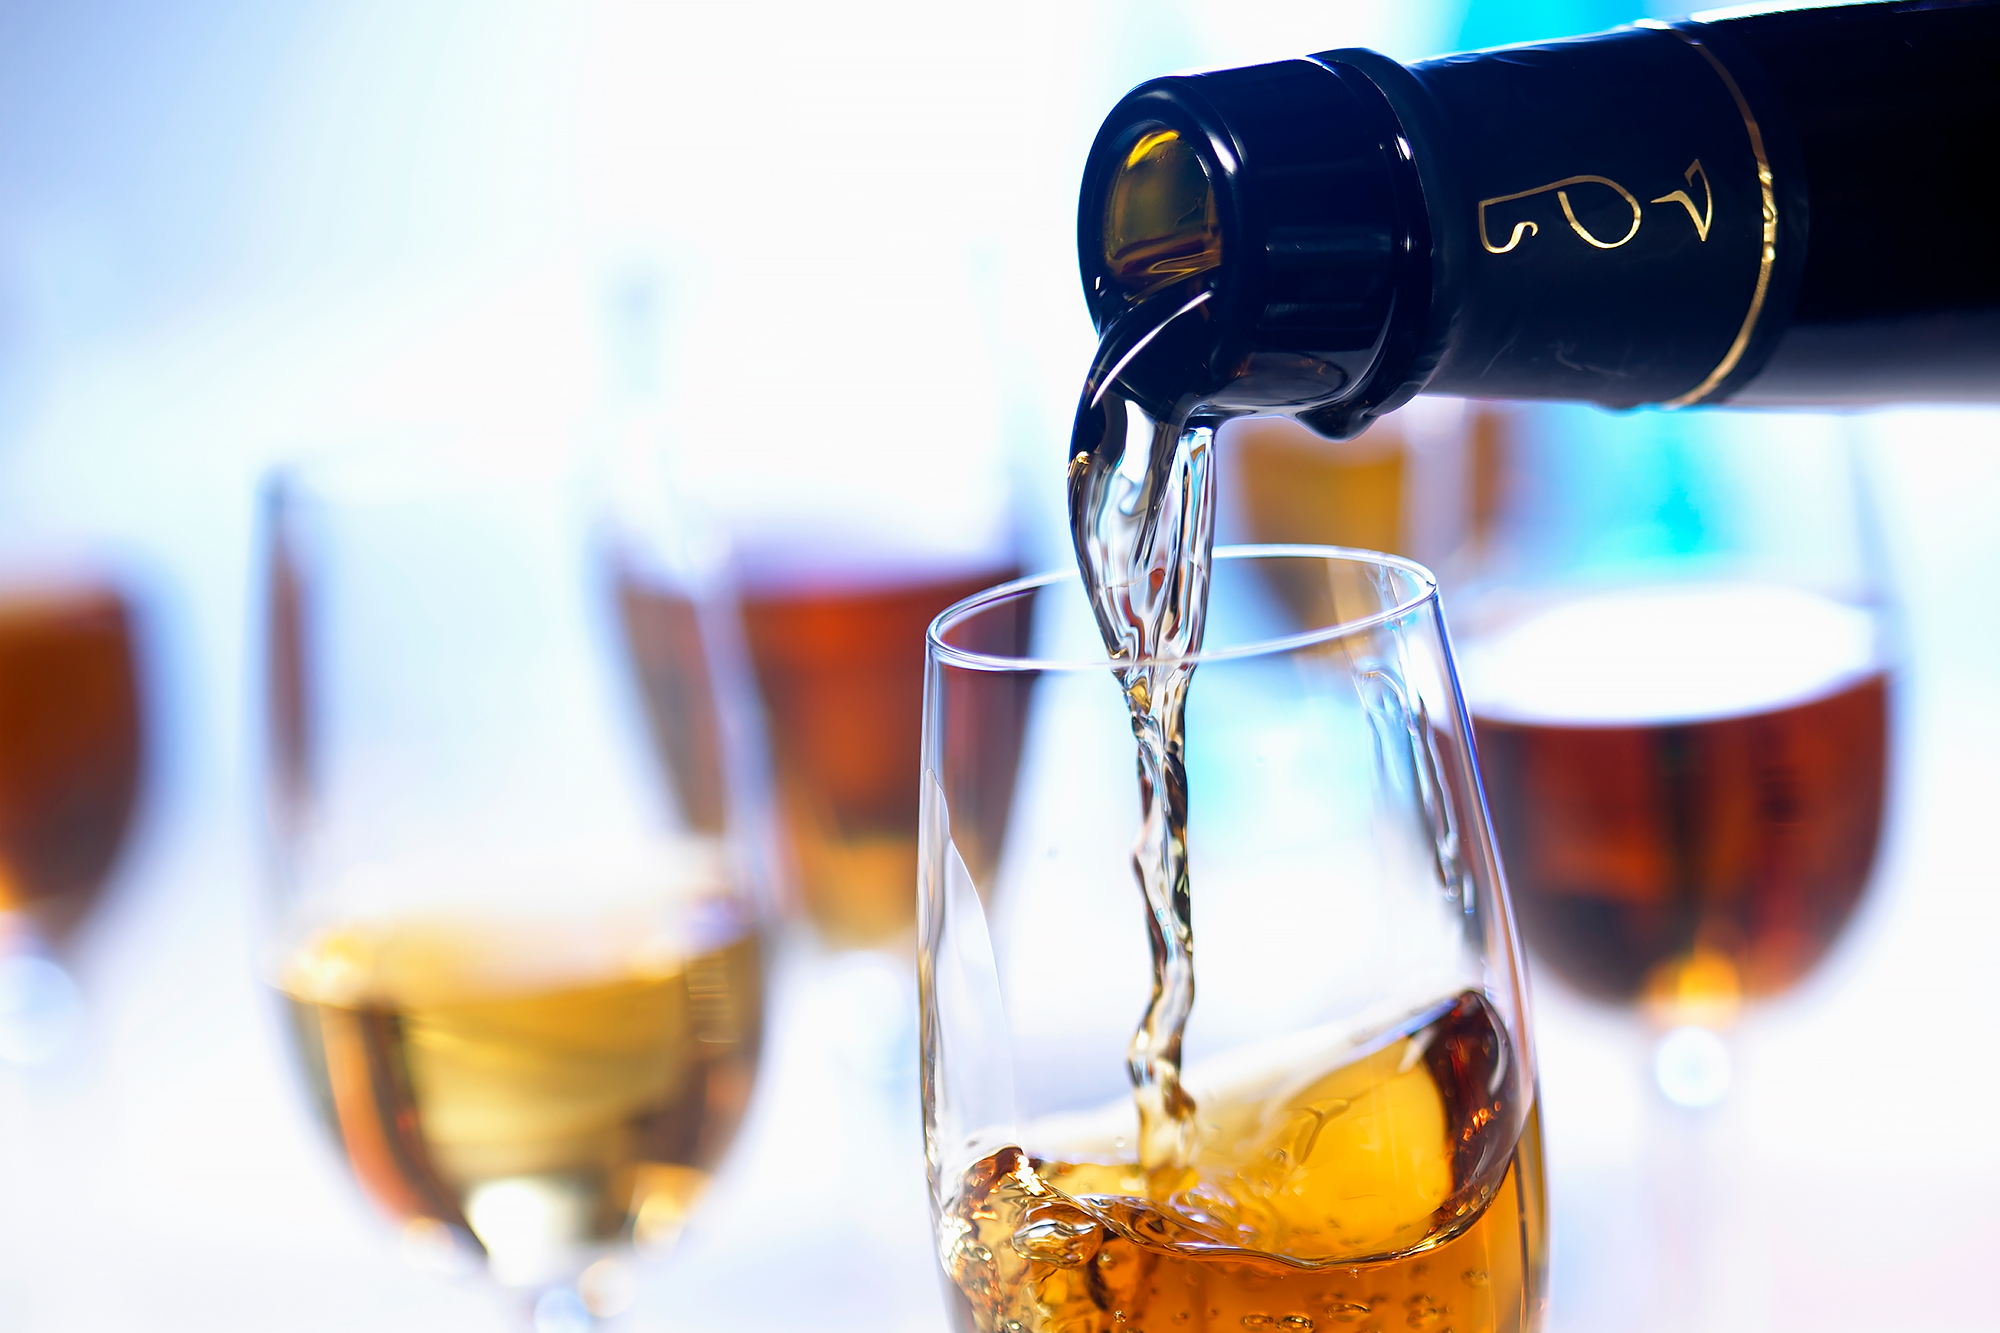 Sherry Regulations Are Undergoing Some Major Changes